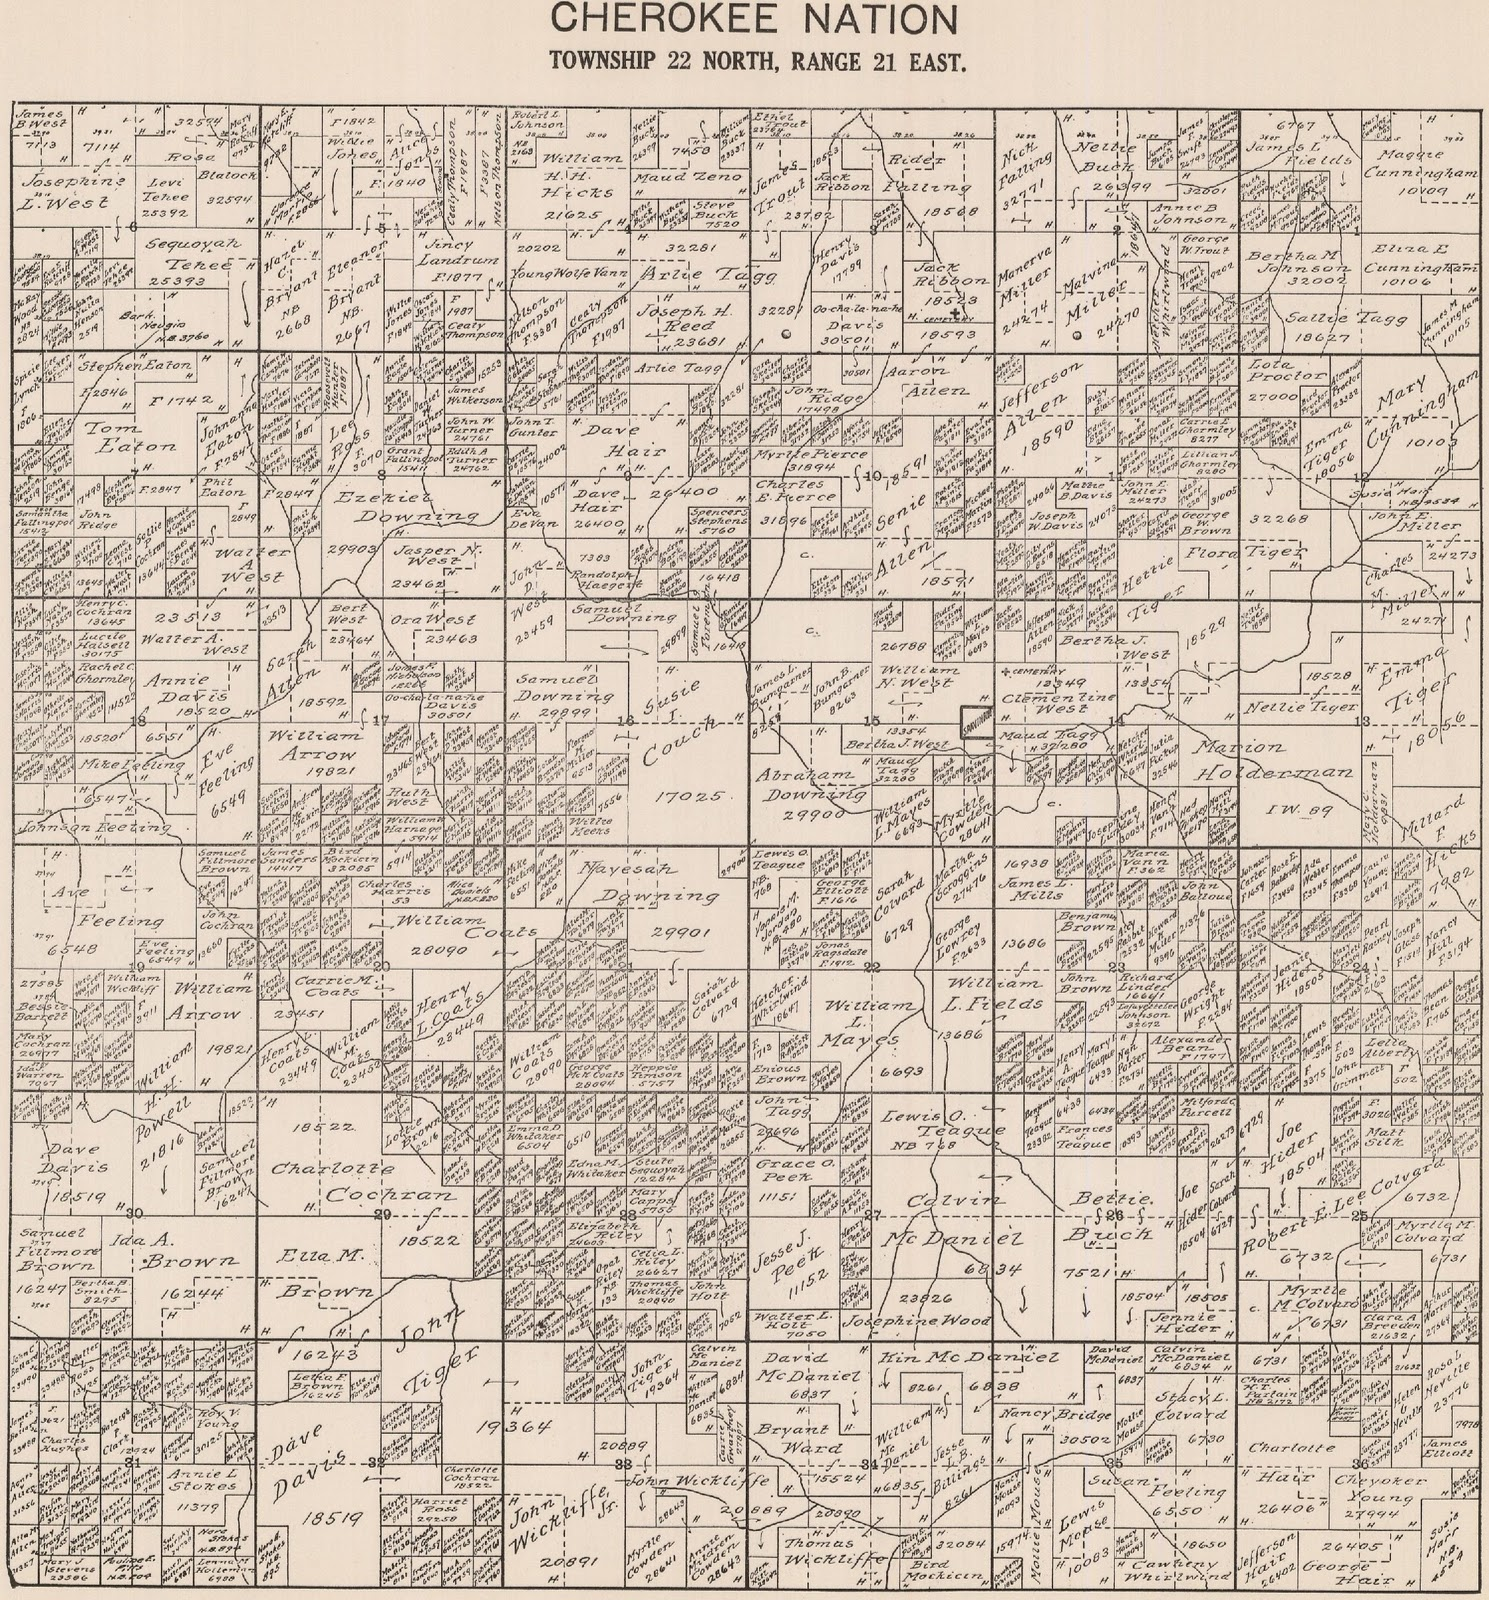 use this mayes county map to locate the general area of the township and range from the maps below